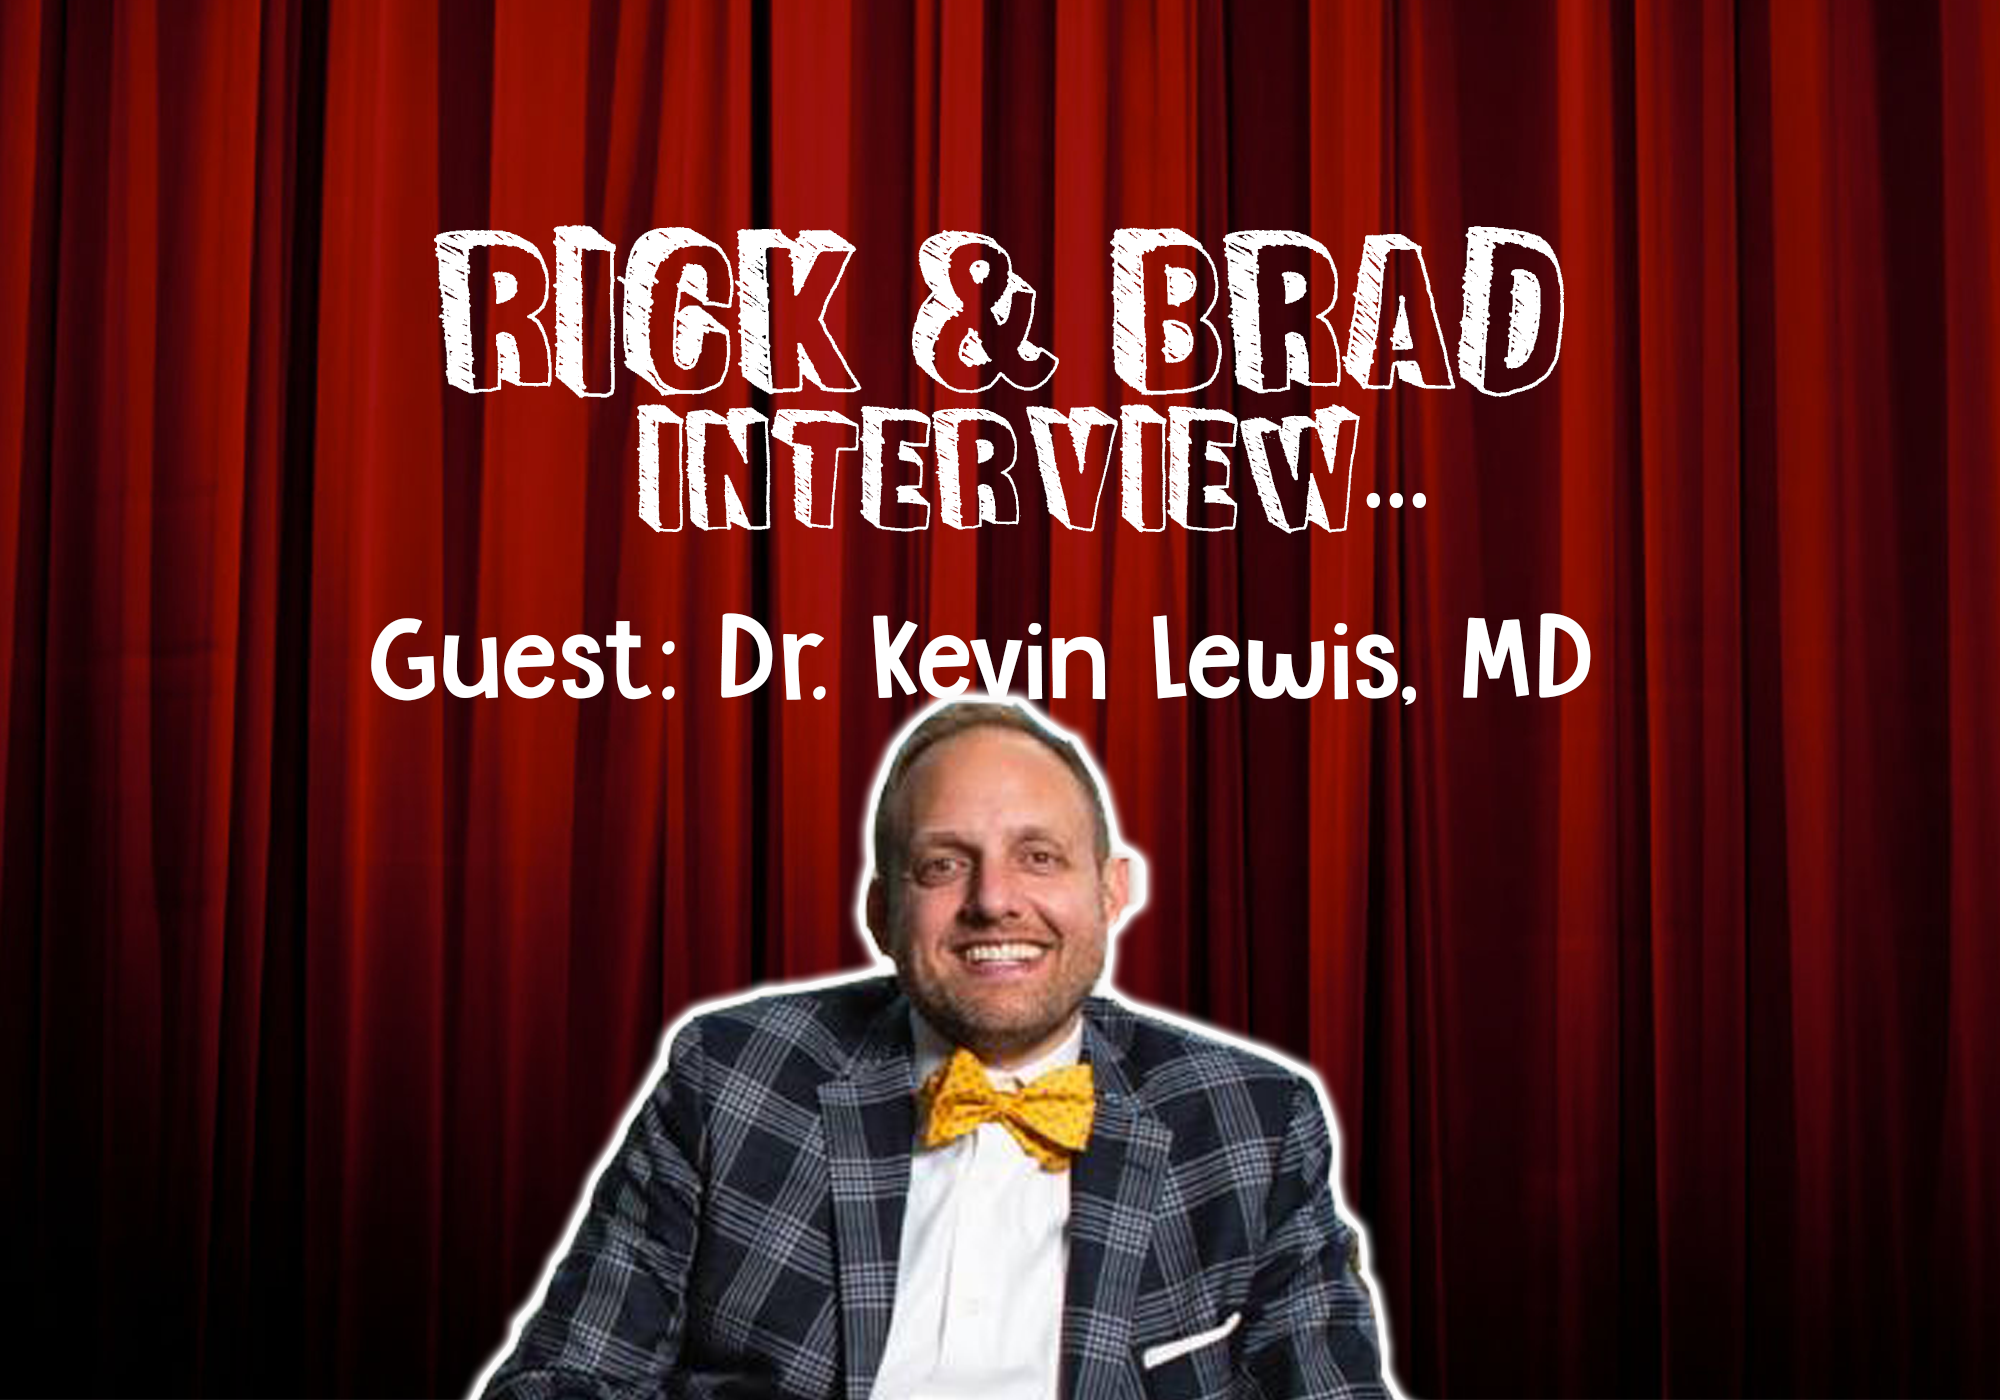 rb-interview-guest-logo-dr-lewis1